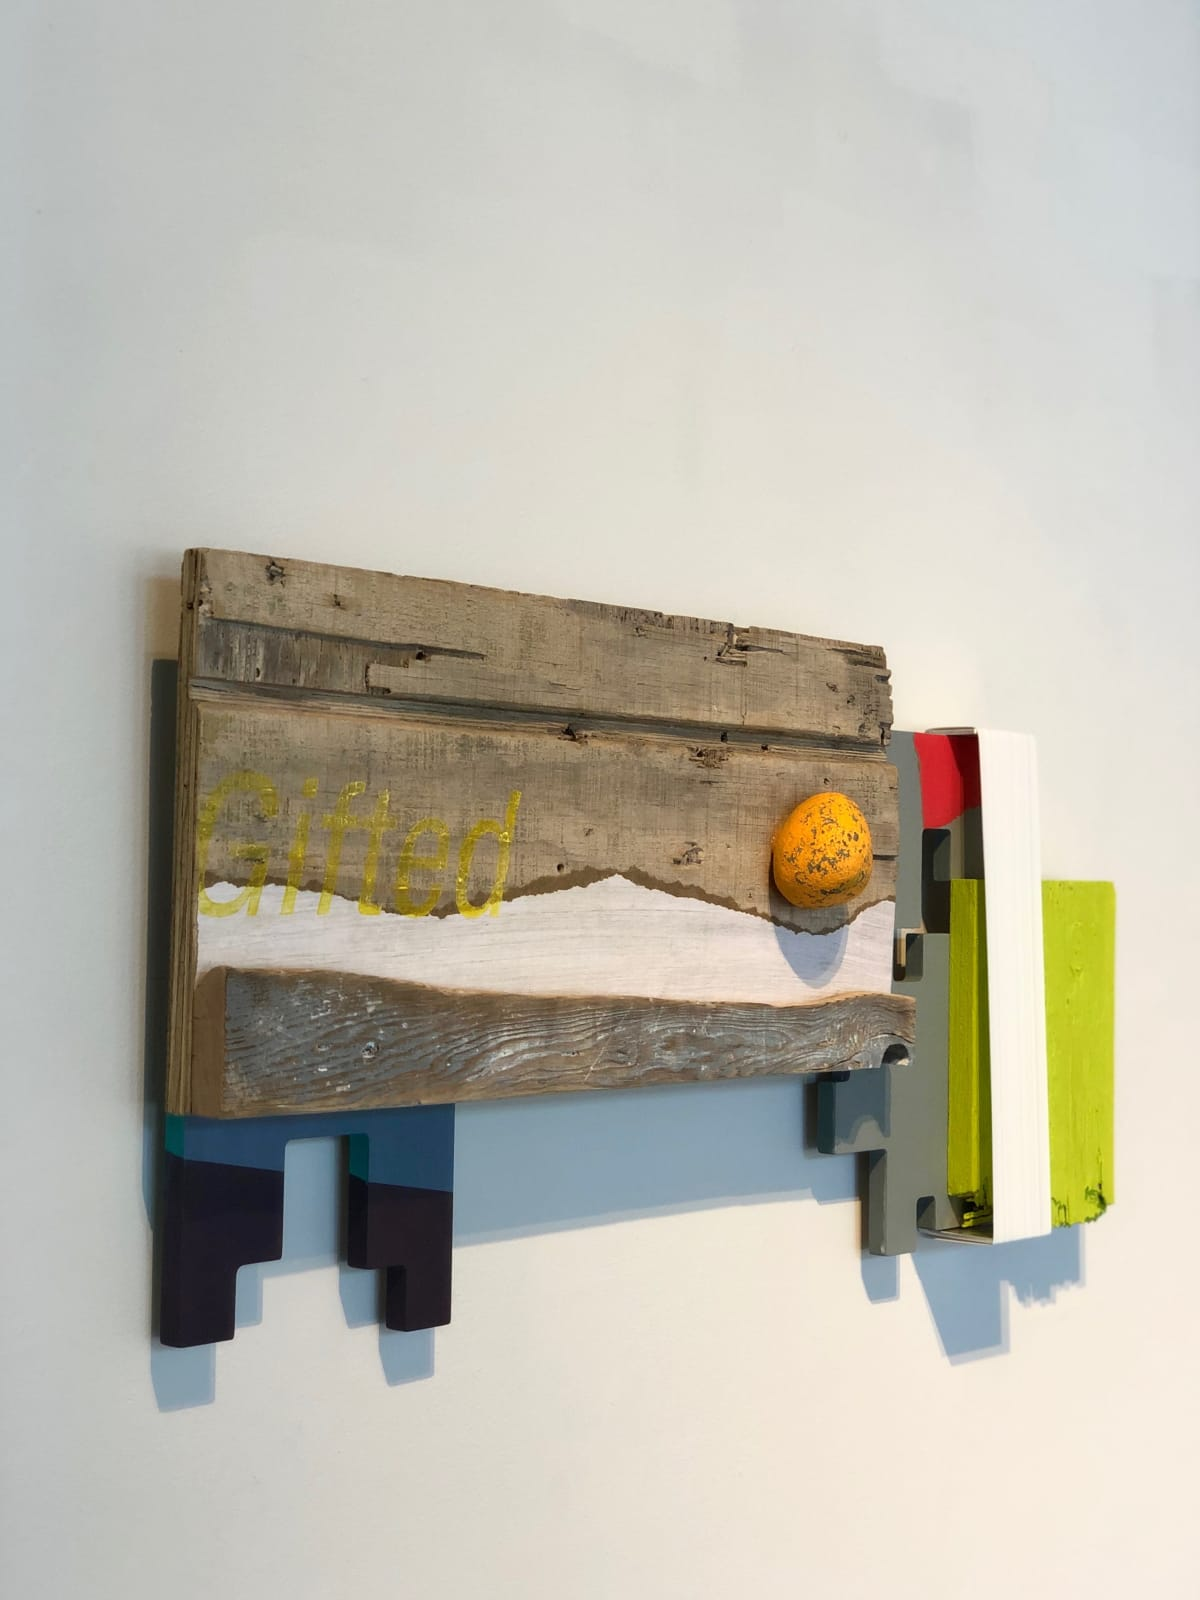 Andrés Ferrandis Gifted, 2020 Acrylic on wood, polyester, objet trouvé, a painted stone and aluminum 14 x 29 x 2.25